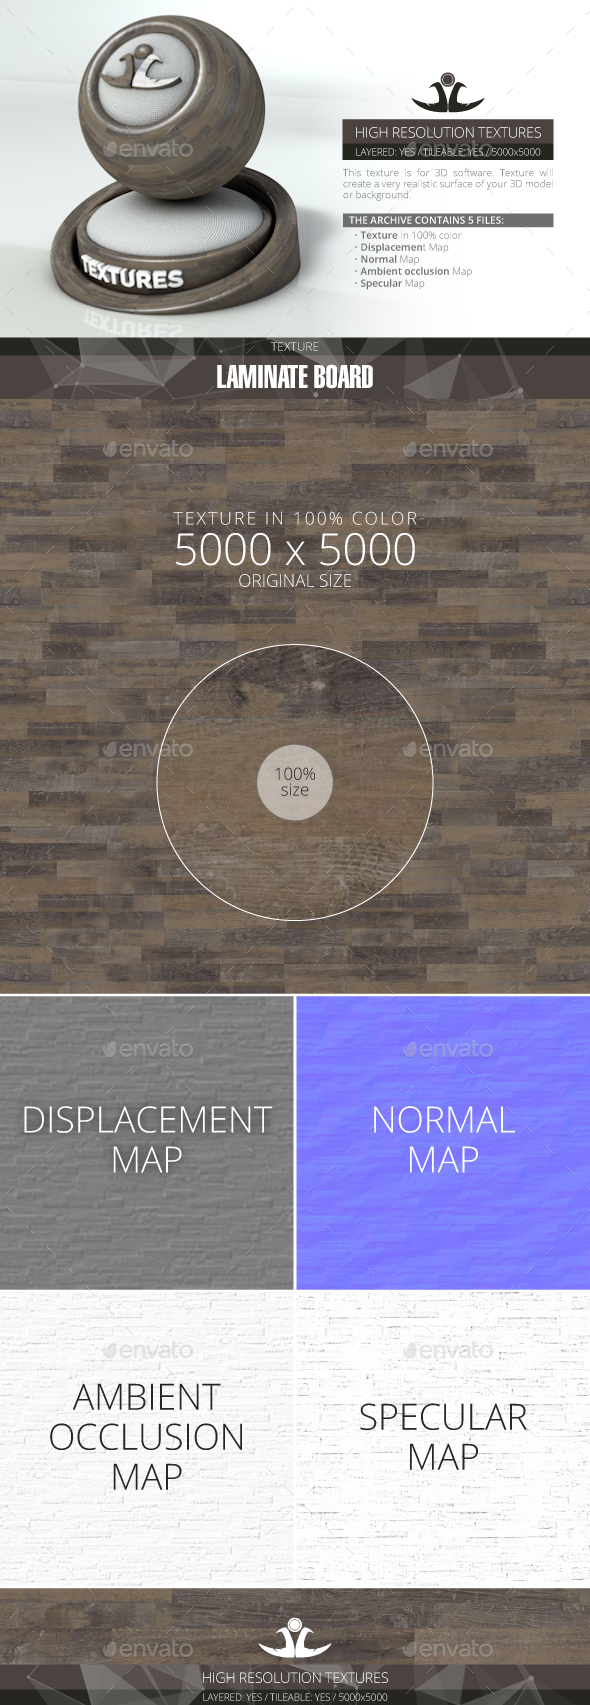 Laminate Board 27 - 3DOcean Item for Sale